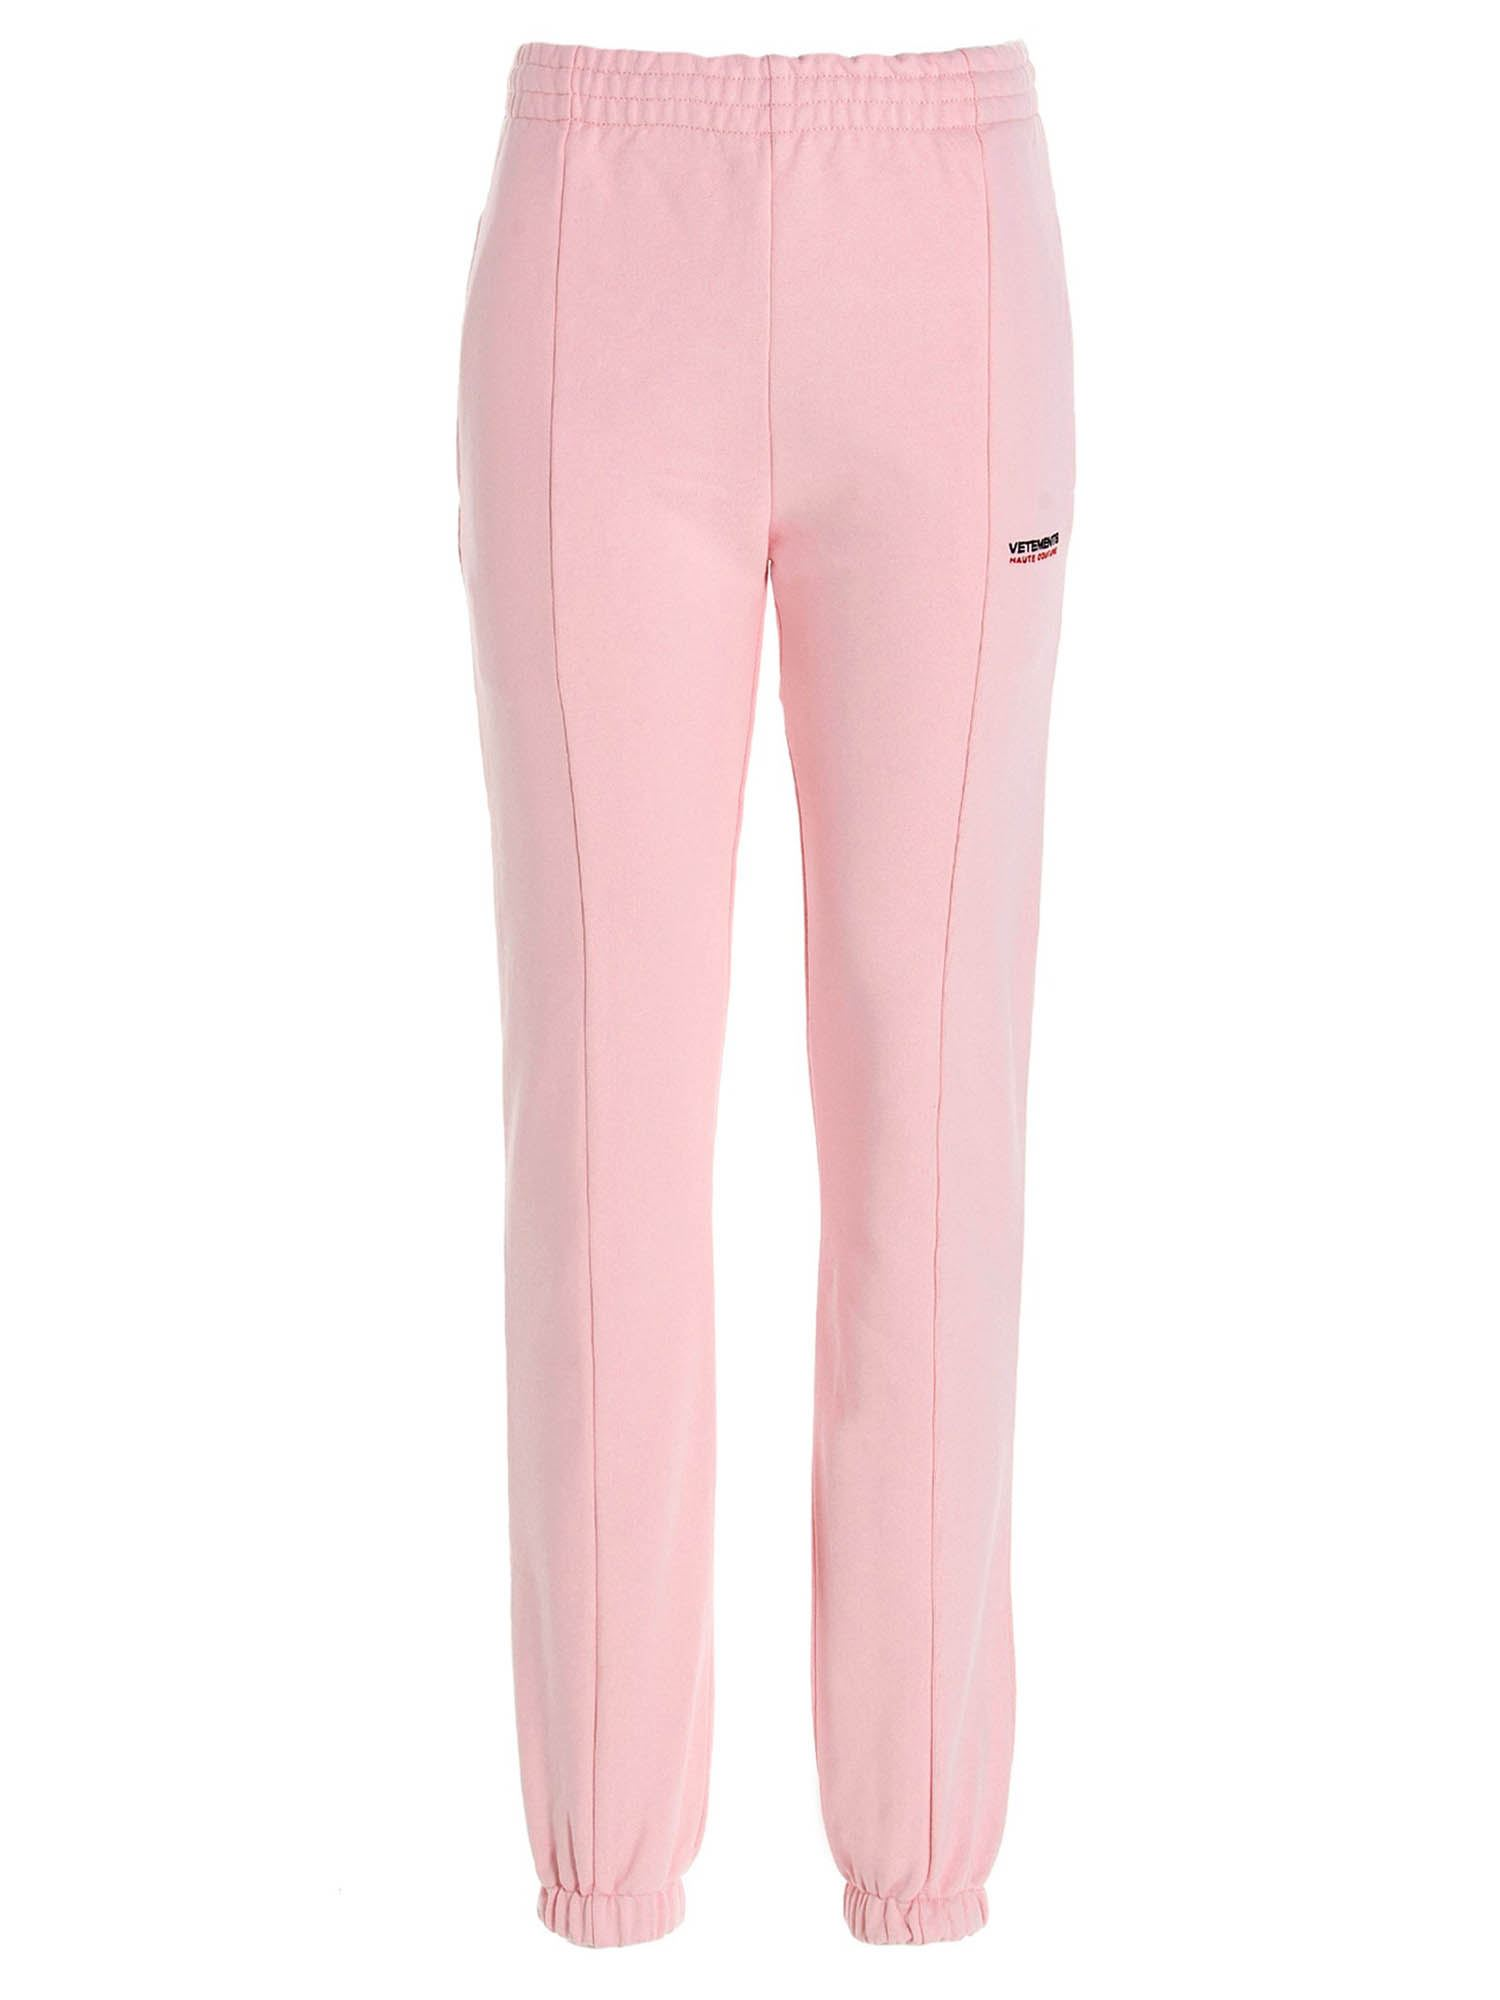 Vetements HAUTE COUTURE JOGGERS IN PINK